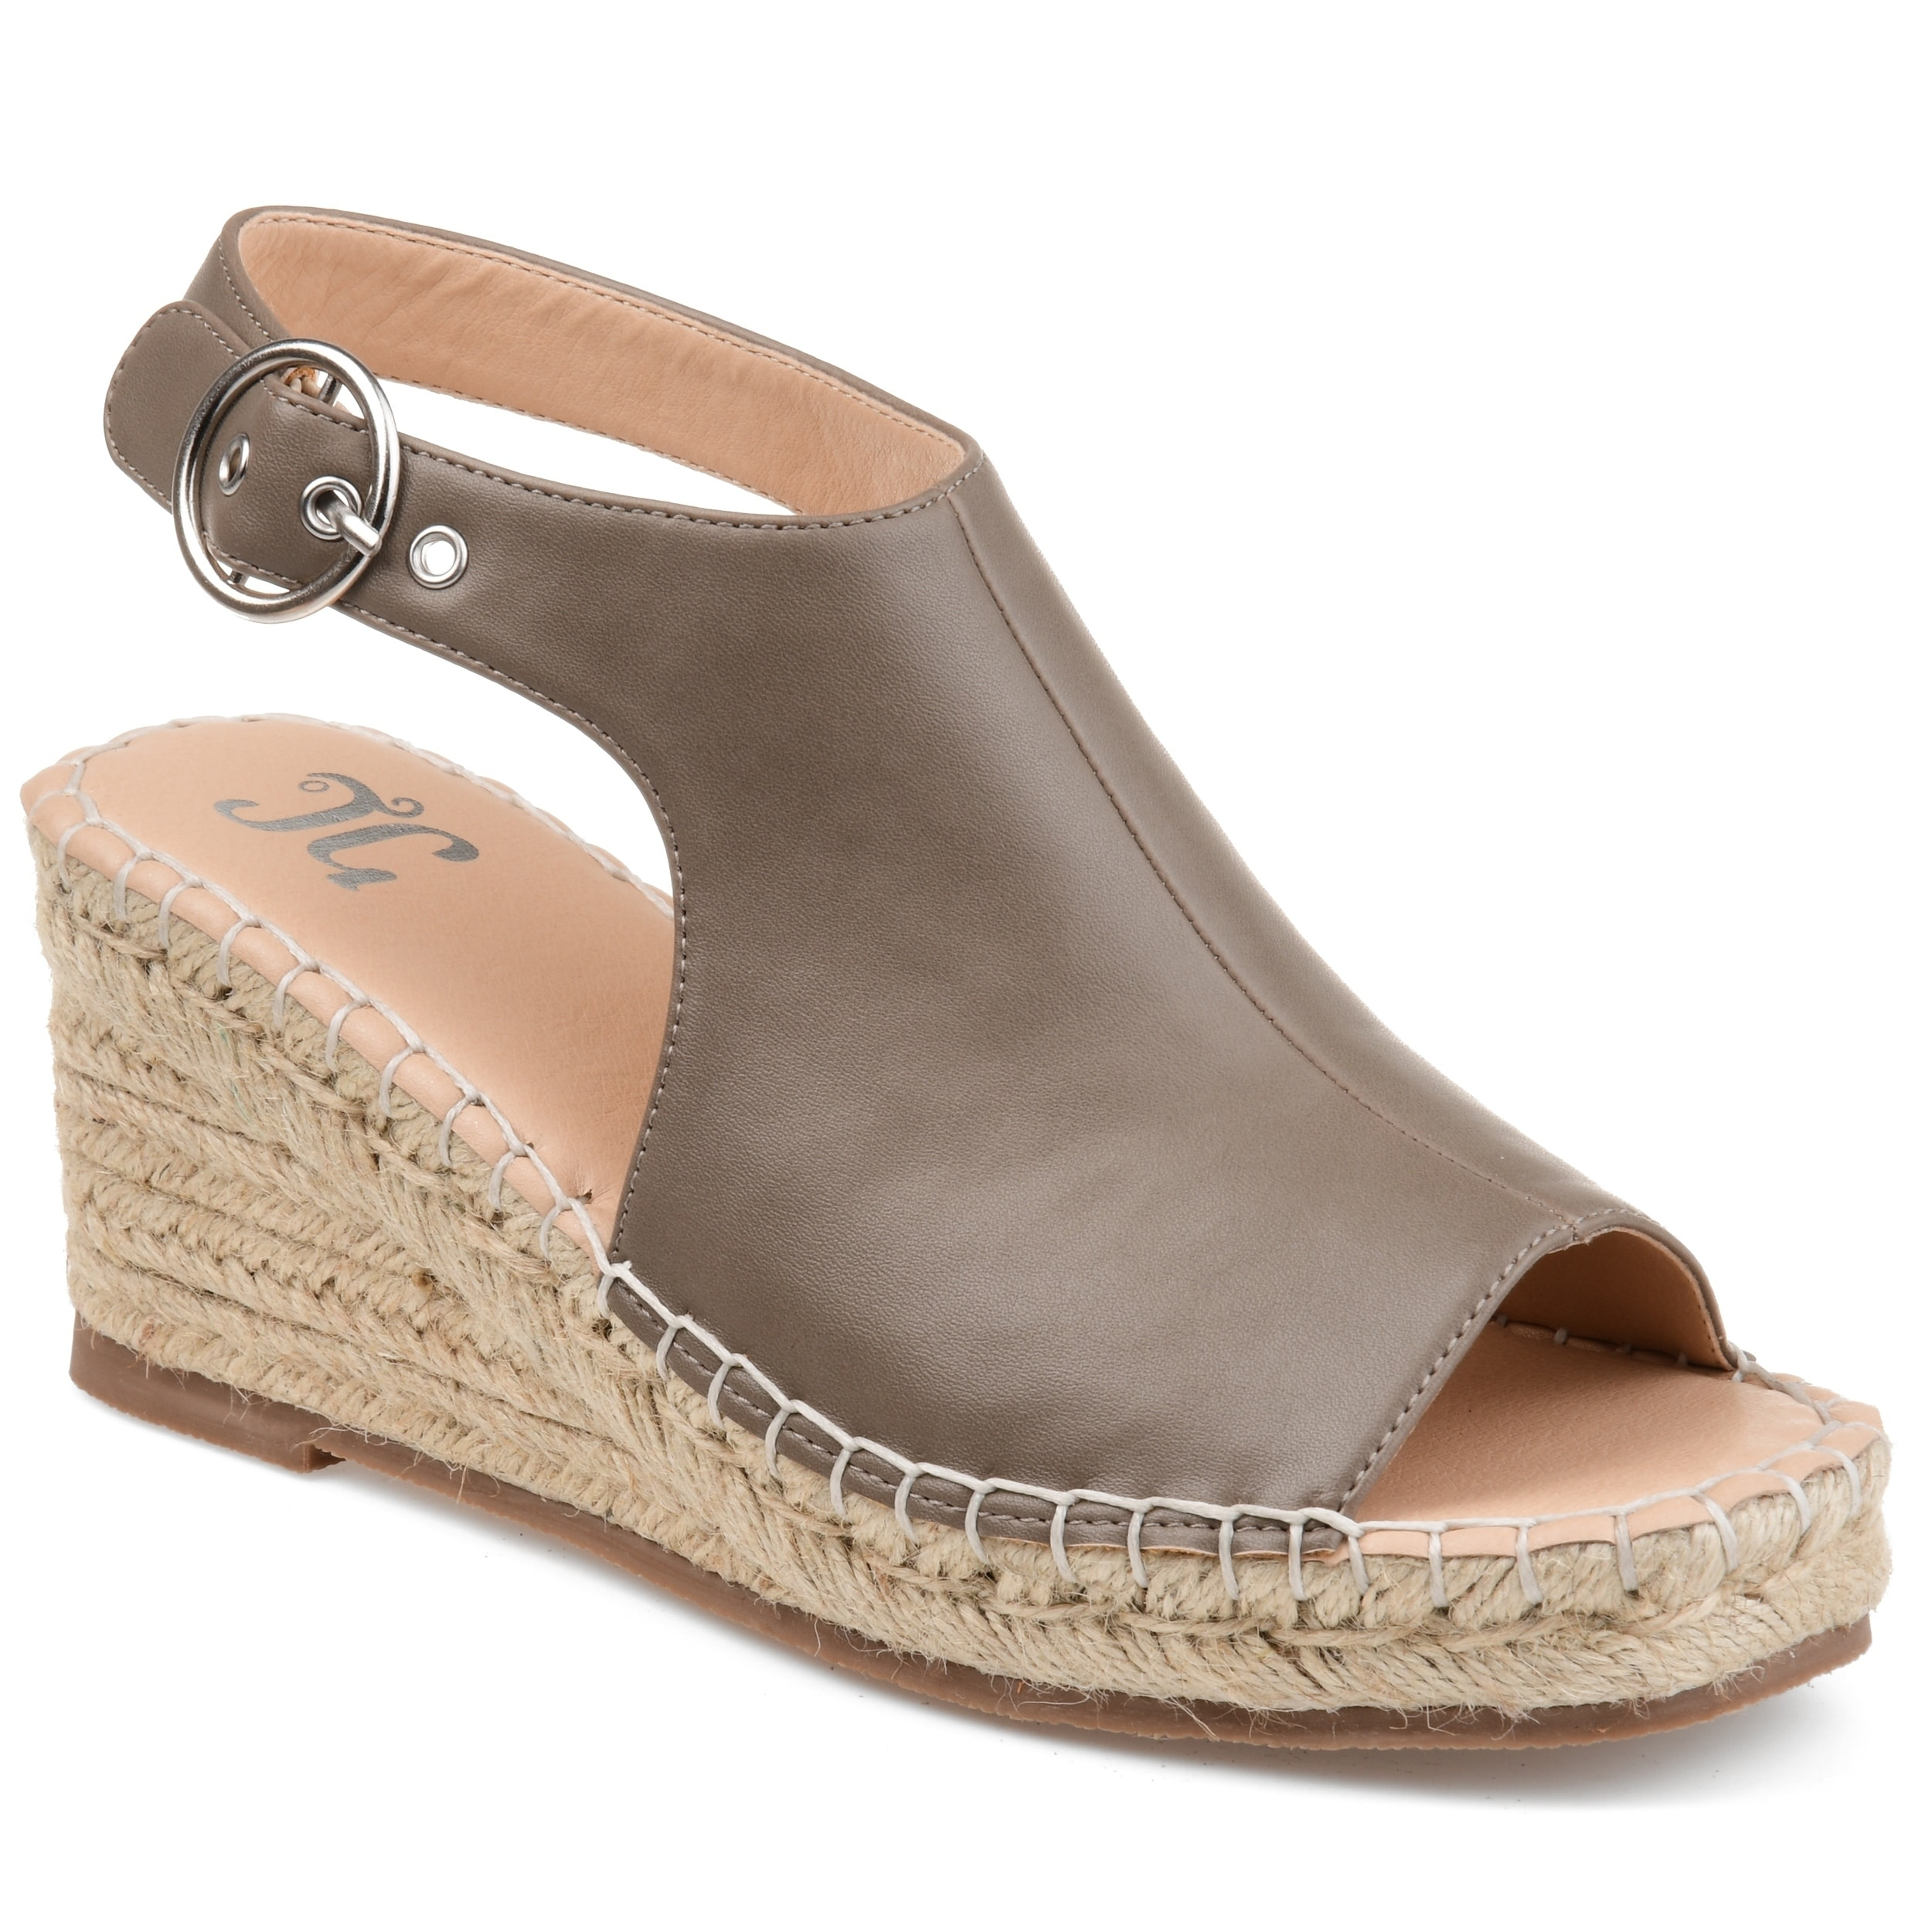 ec655e9abc8b Shop Journee Collection Crew Women s Wedge Sandals - Free Shipping Today -  Overstock - 20908163